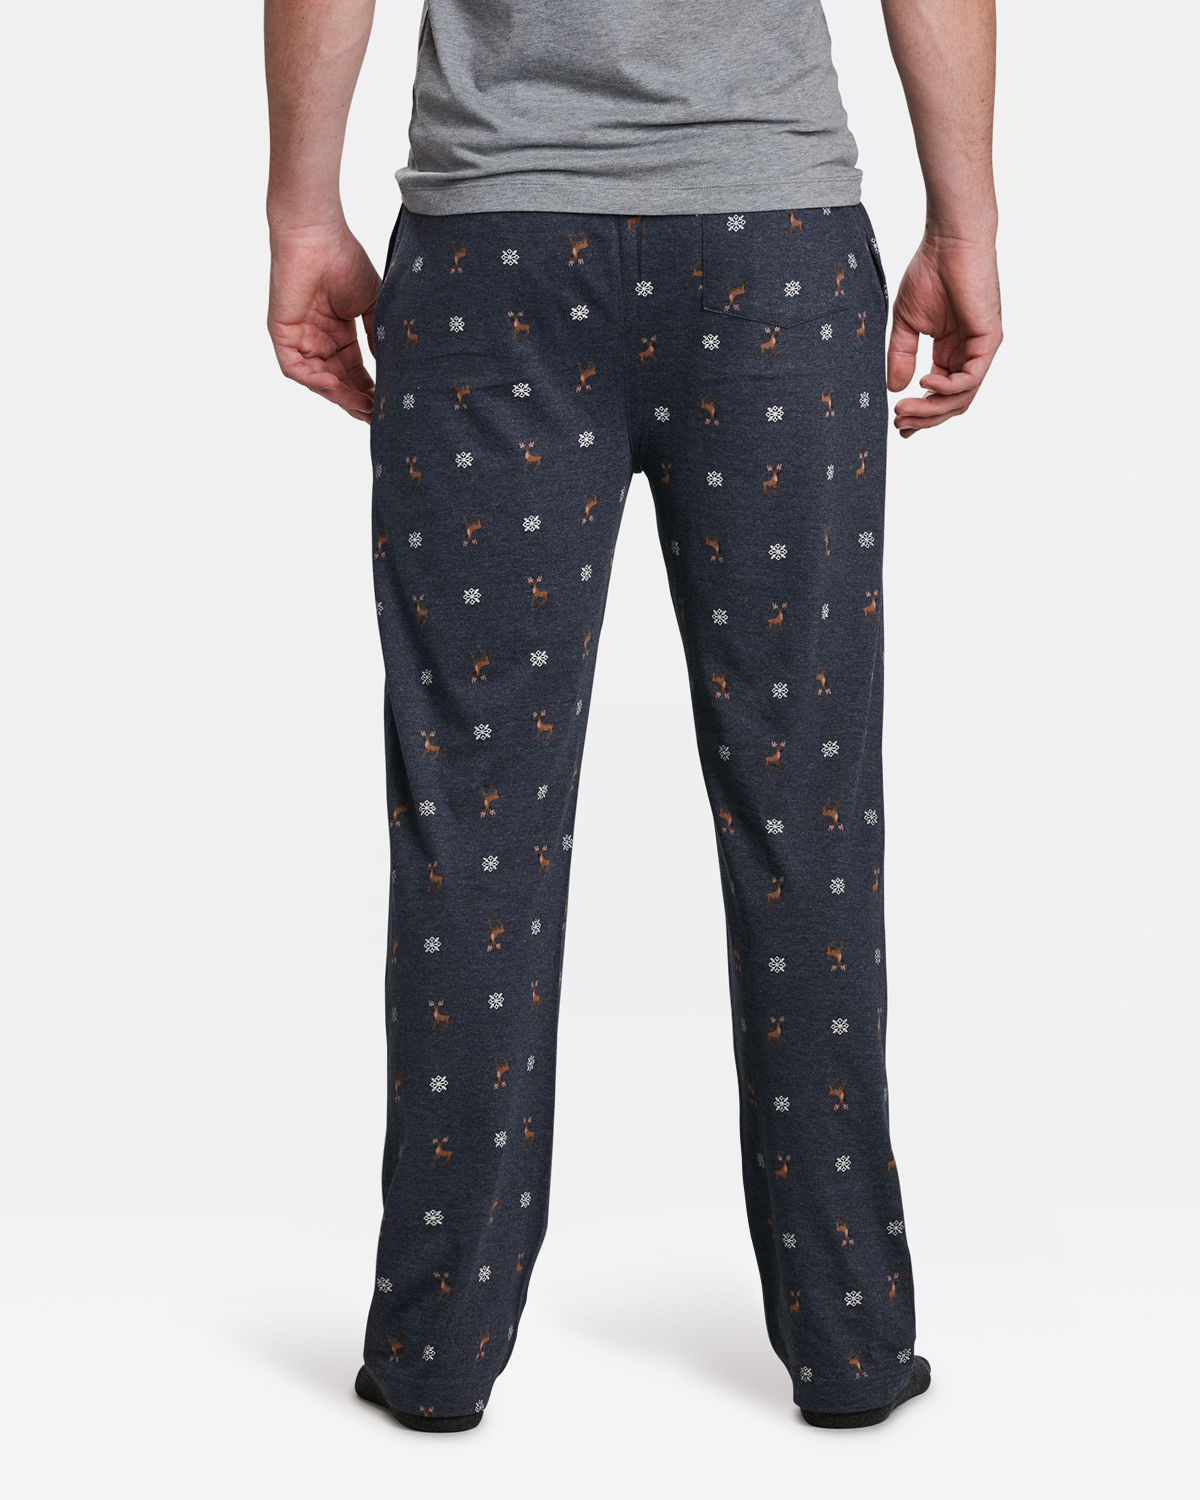 HEREN RUDOLFDESSIN PYJAMABROEK | 92568495 WE Fashion